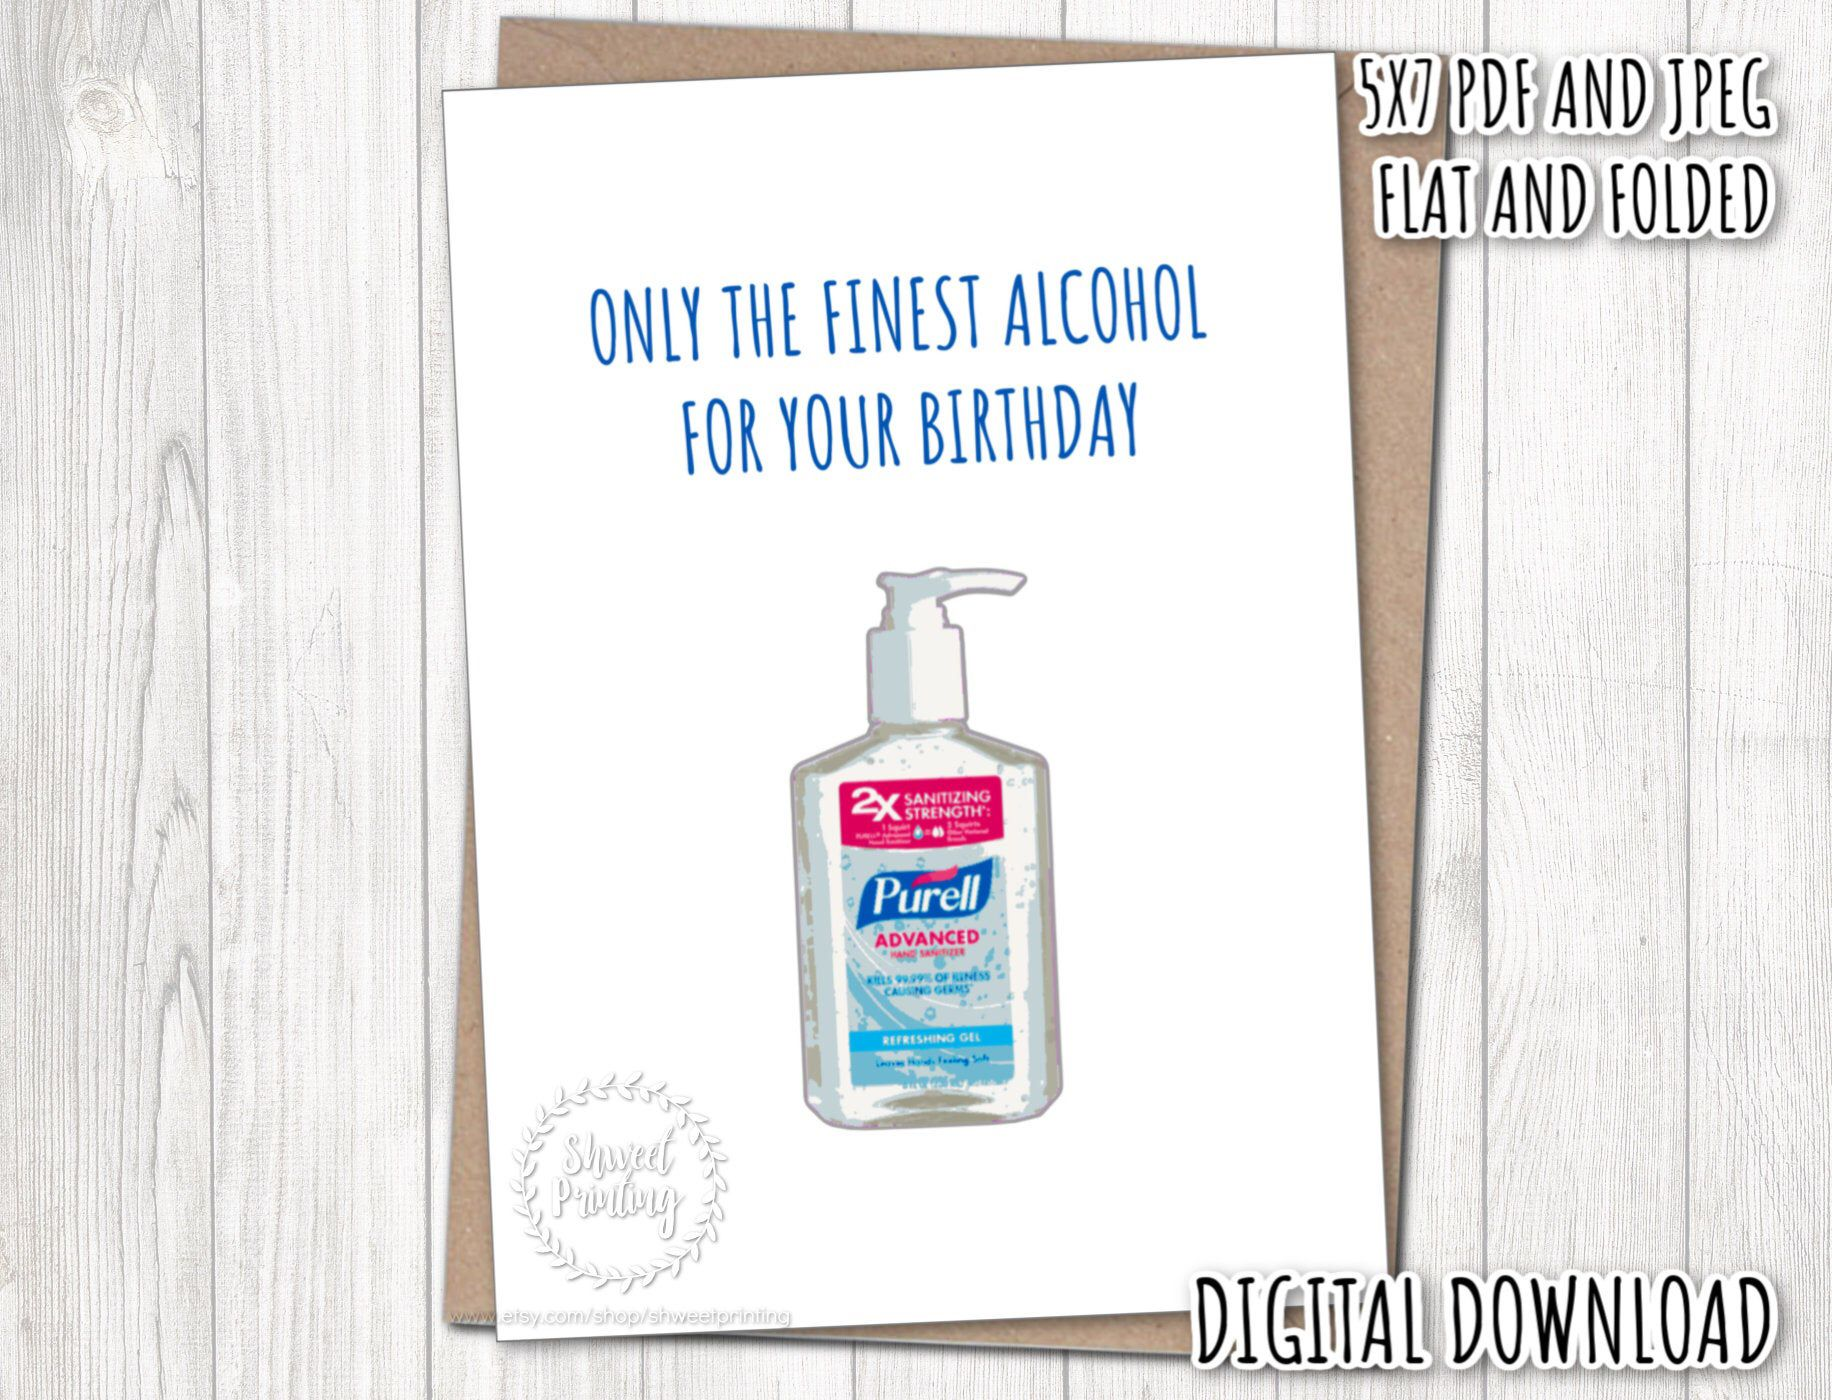 Only The Finest Alcohol For Your Birthday Card Happy Etsy In 2020 Birthday Cards It S Your Birthday Hand Sanitizer Gift